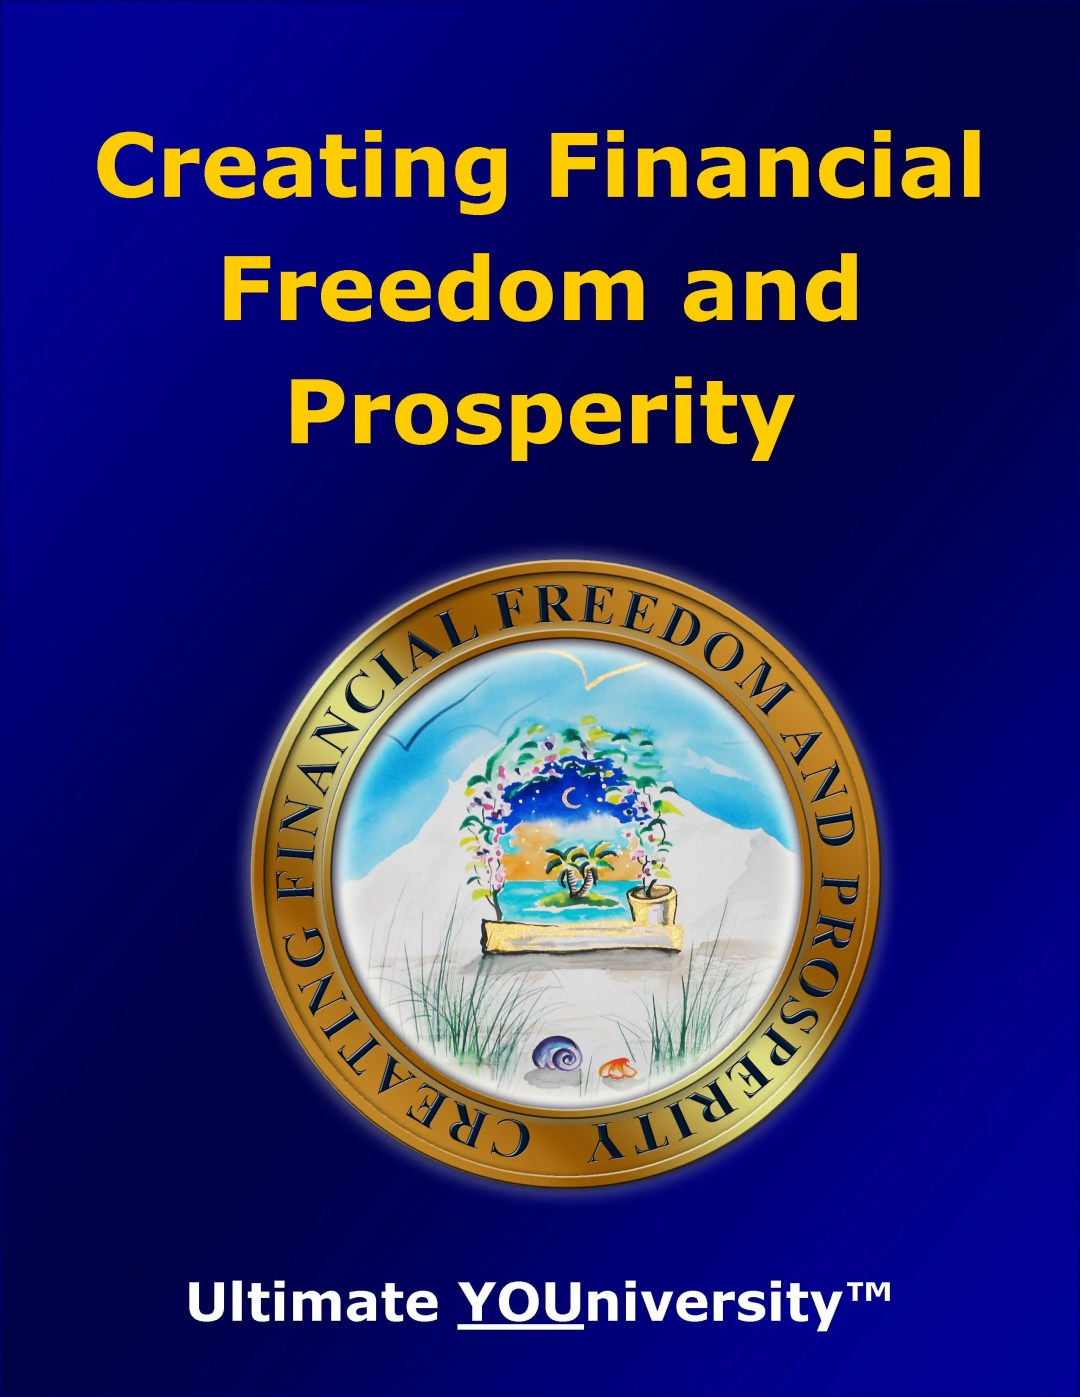 Creating Financial Freedom and Prosperity, one of the 14 Categories